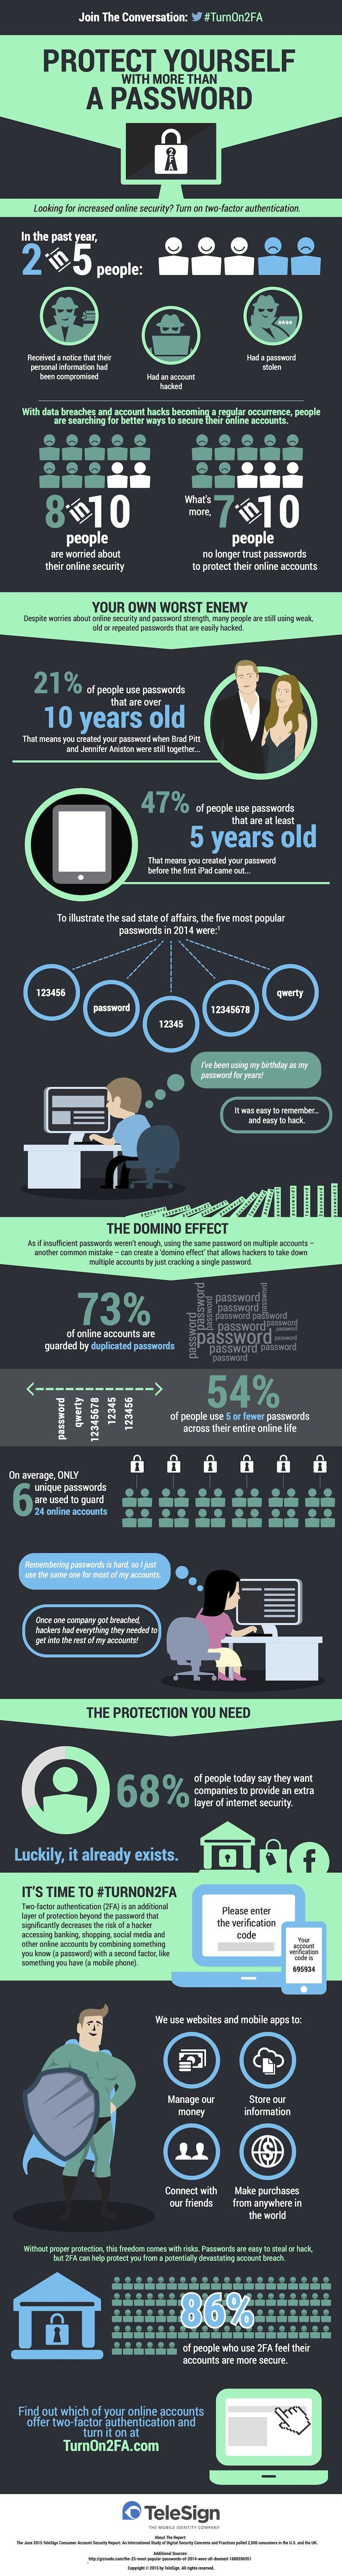 People Are Still the Weak Link in the Password System [Infographic] http://snip.ly/oyrE?utm_content=buffer552aa&utm_medium=social&utm_source=pinterest.com&utm_campaign=buffer